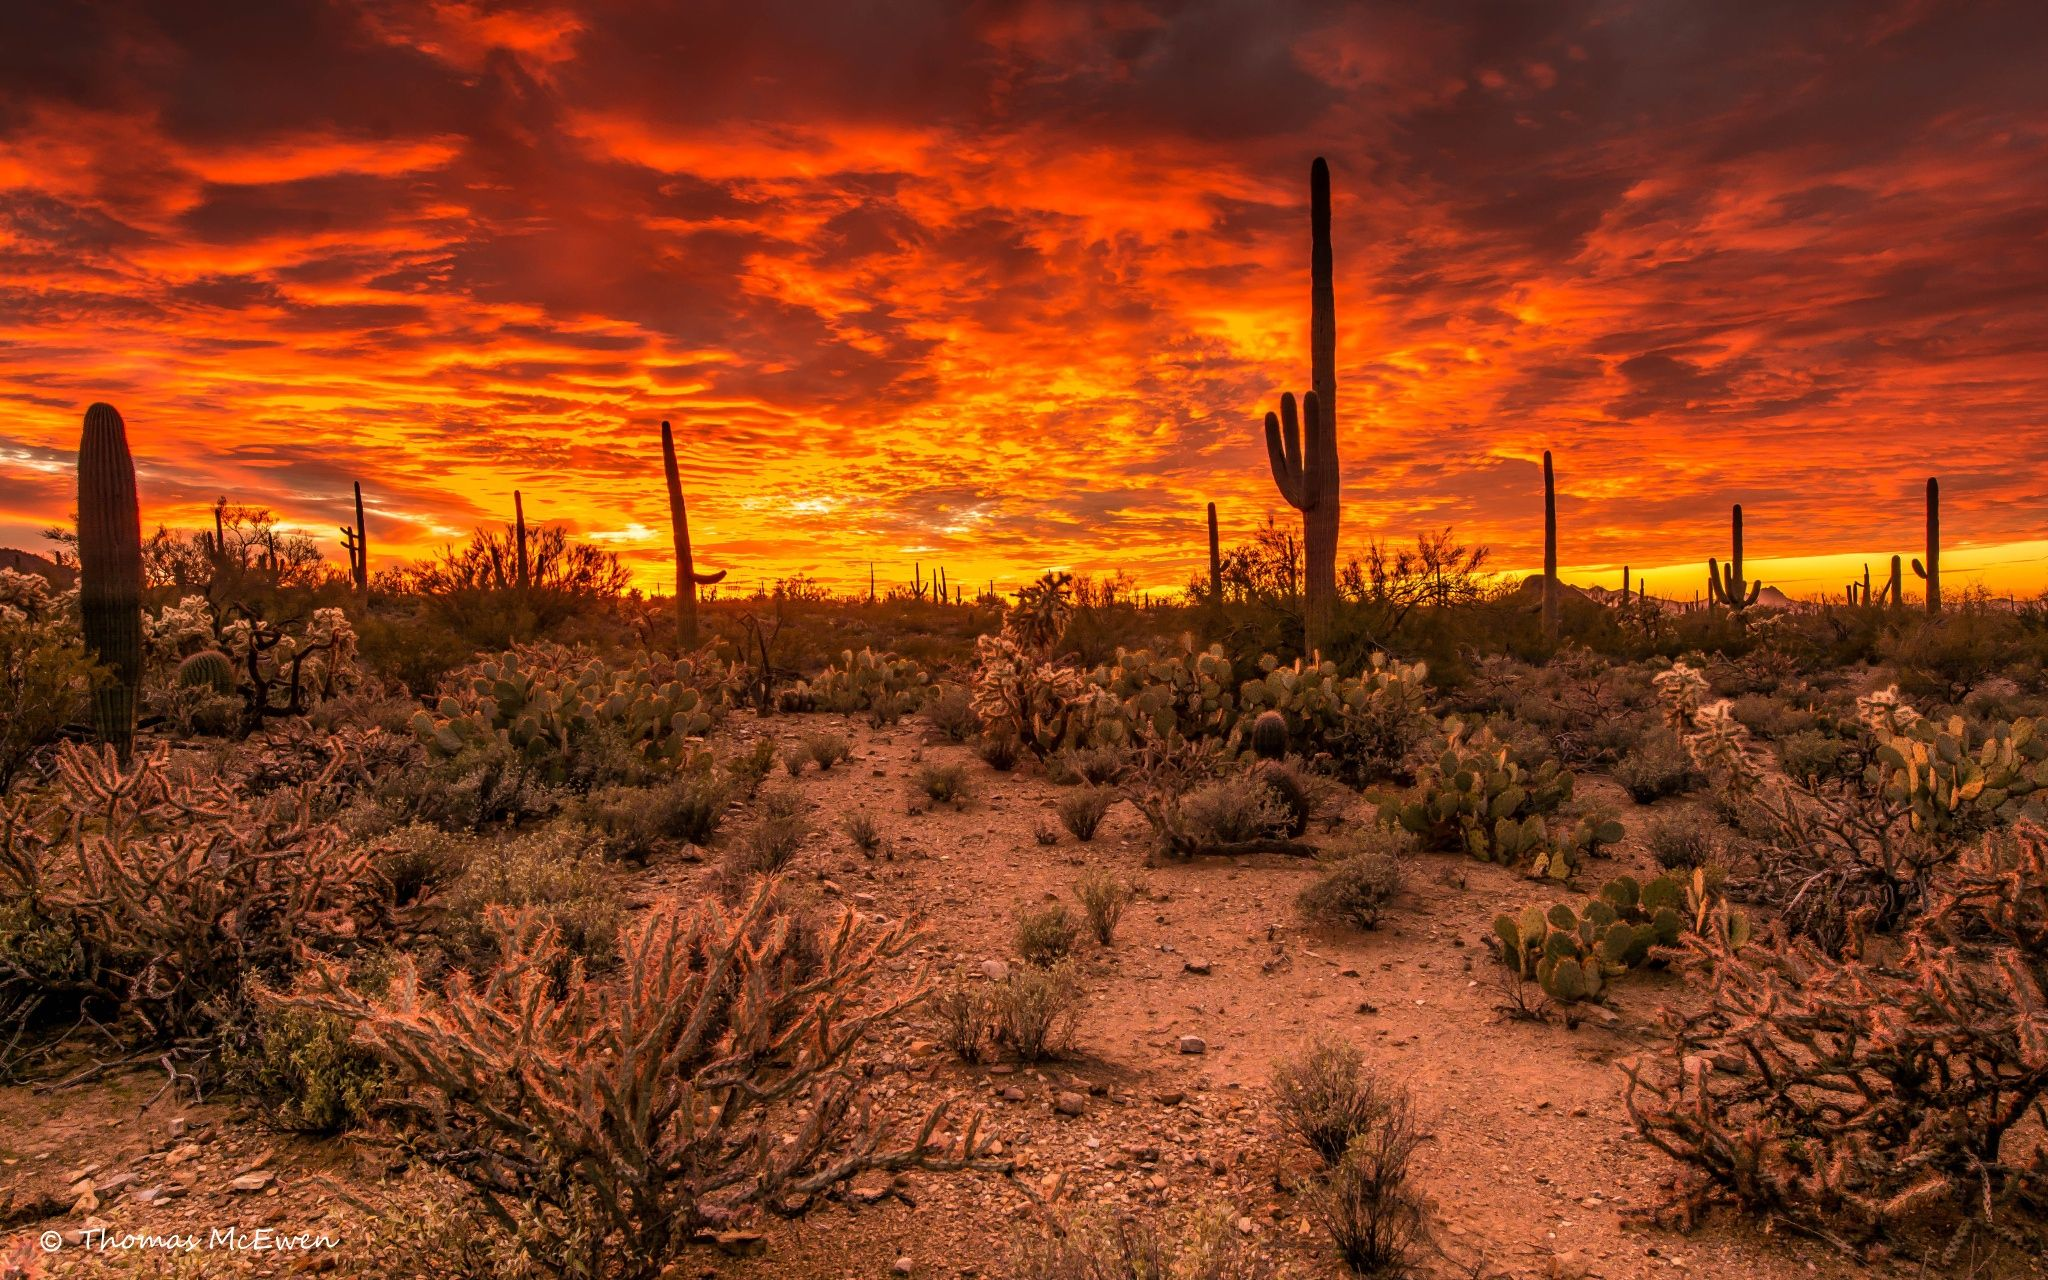 ***Tucson, Arizona - Photograph Western Sunset by Thomas McEwen on 500px